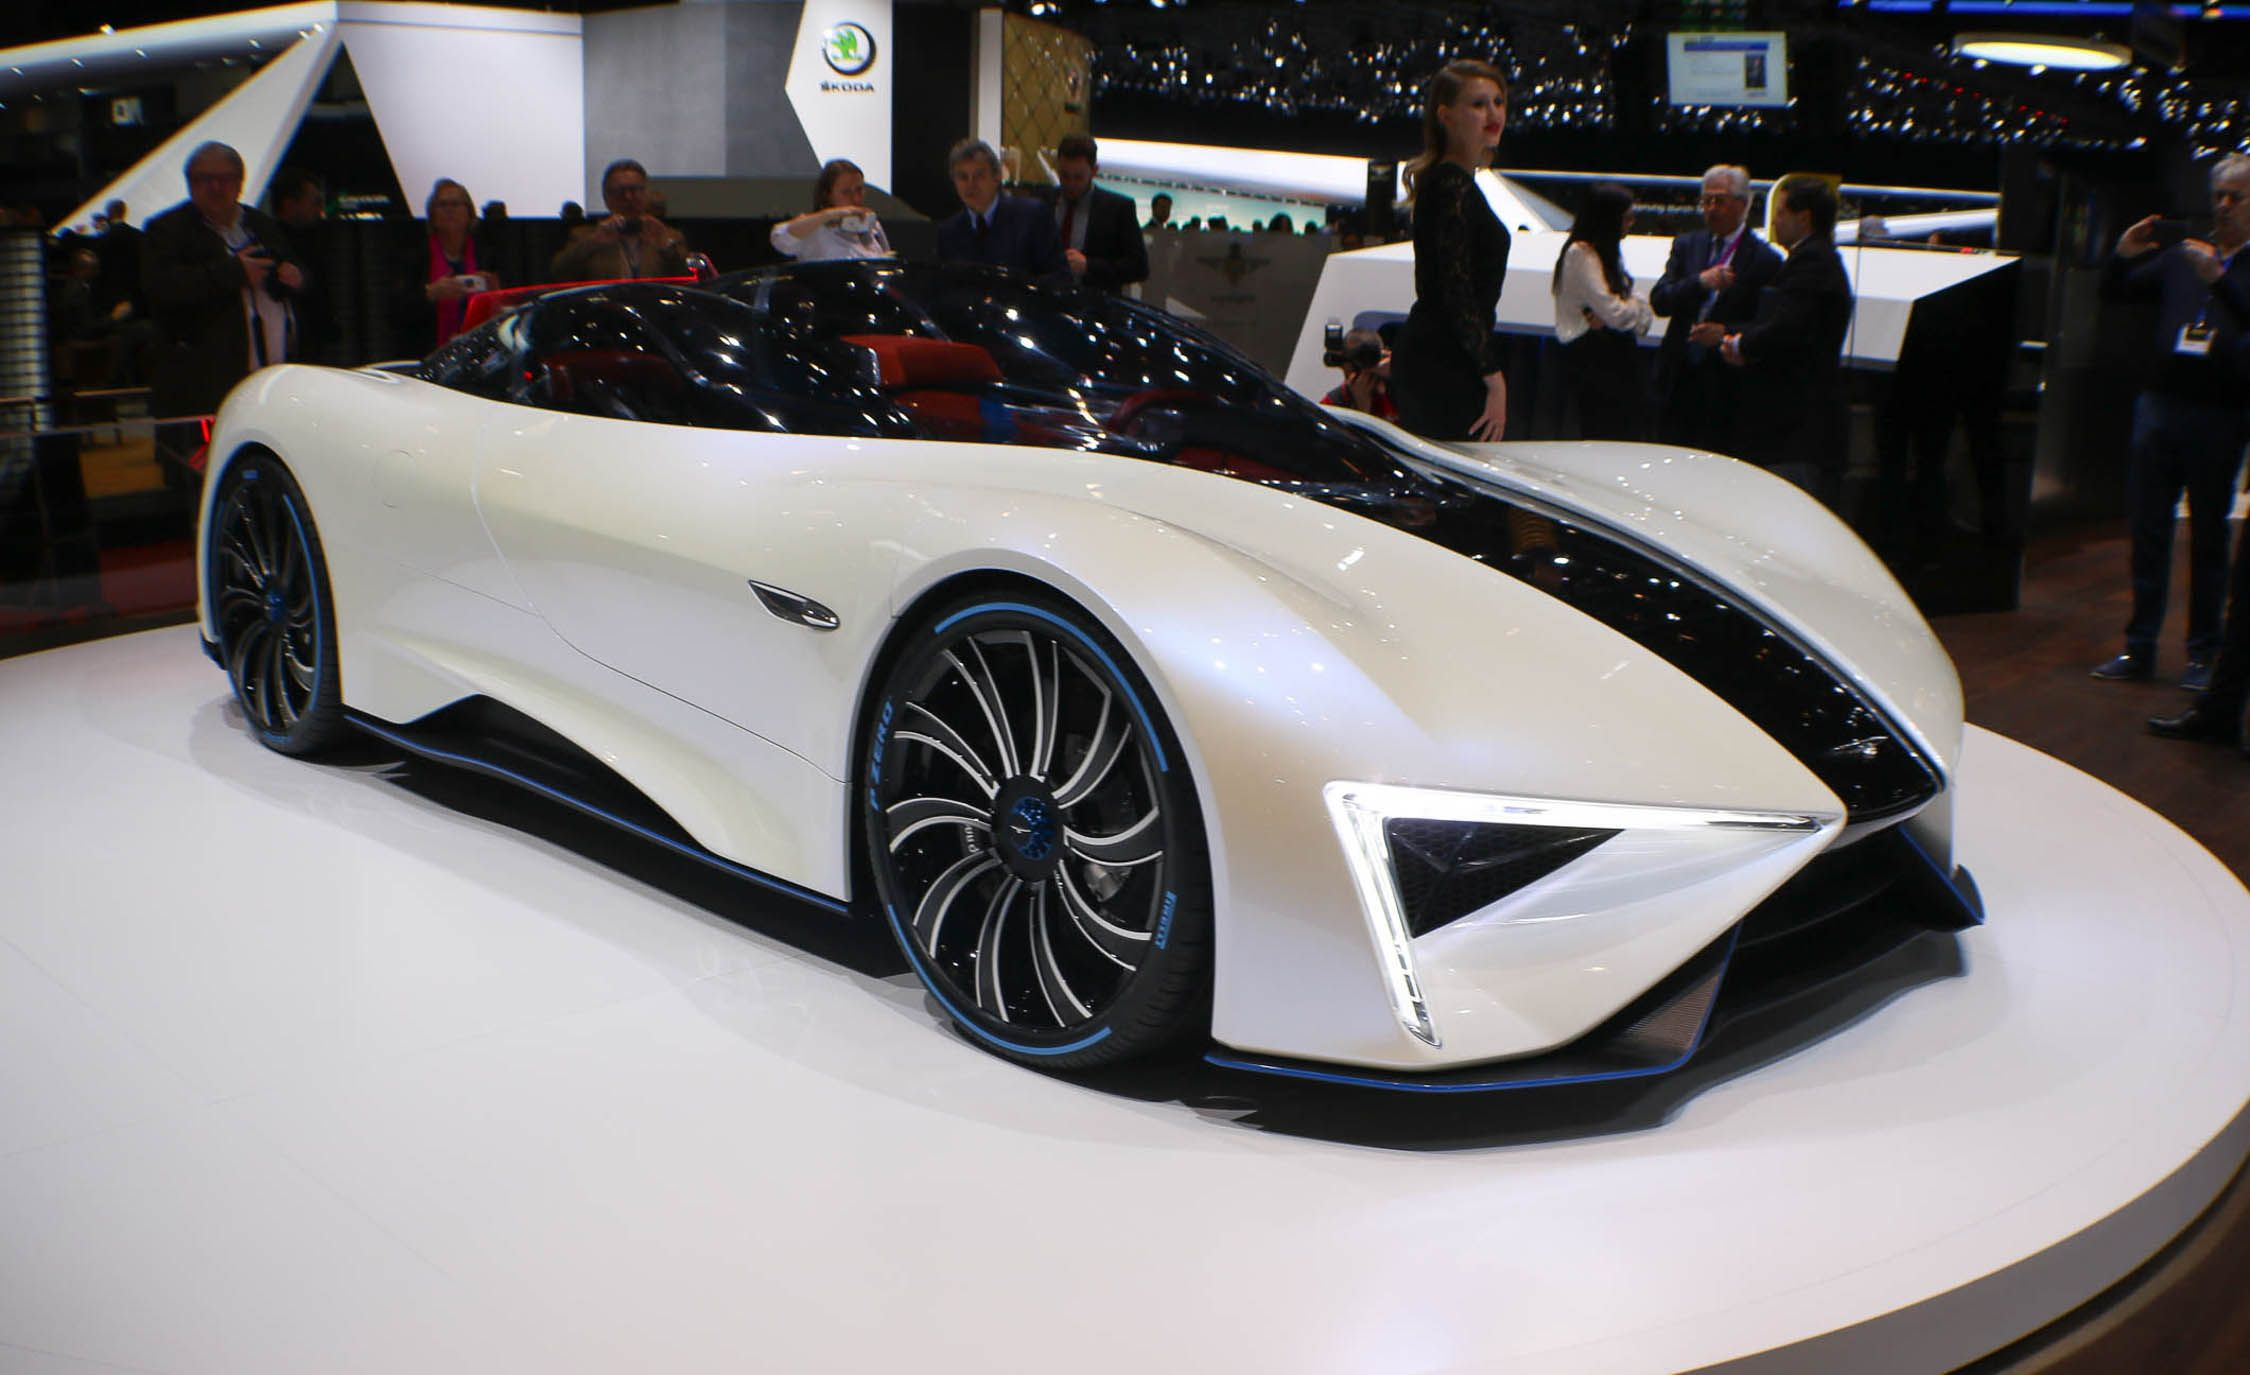 Techrules Ren Supercar Looks Ready For Intergalactic Travel News